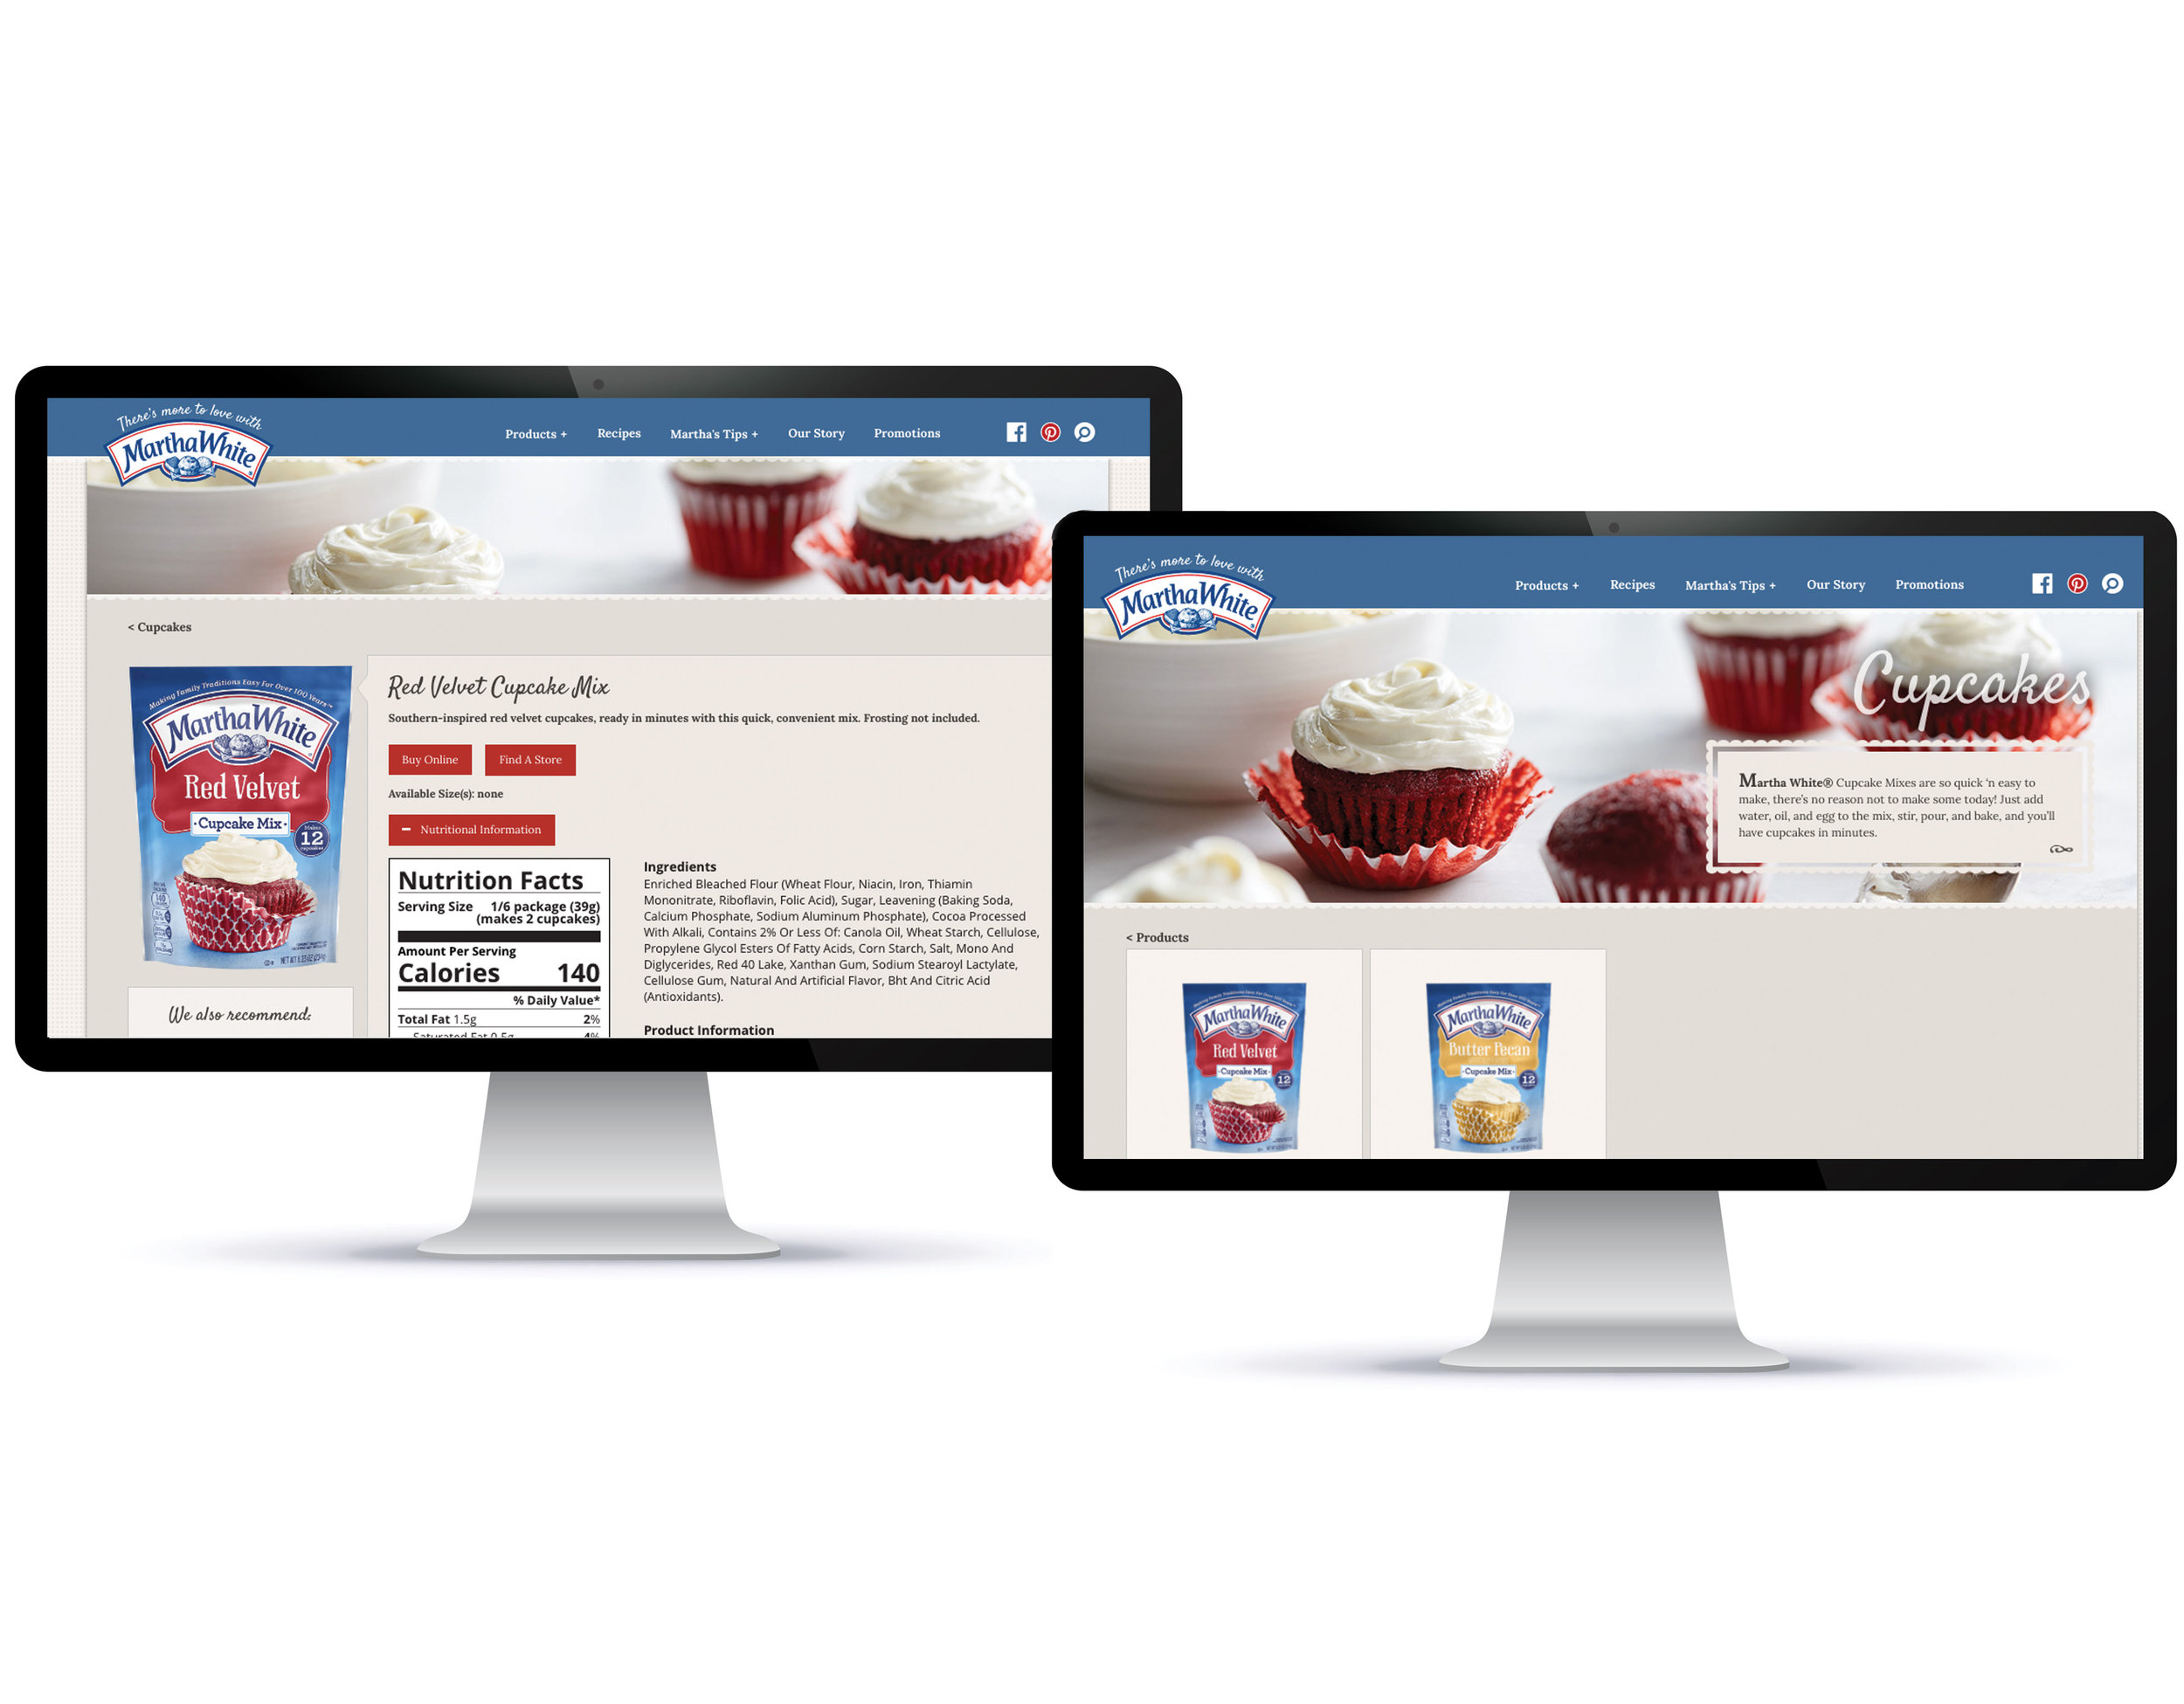 LANDING PAGE    Write new product landing page that easily conveys product benefits and nutritional facts.